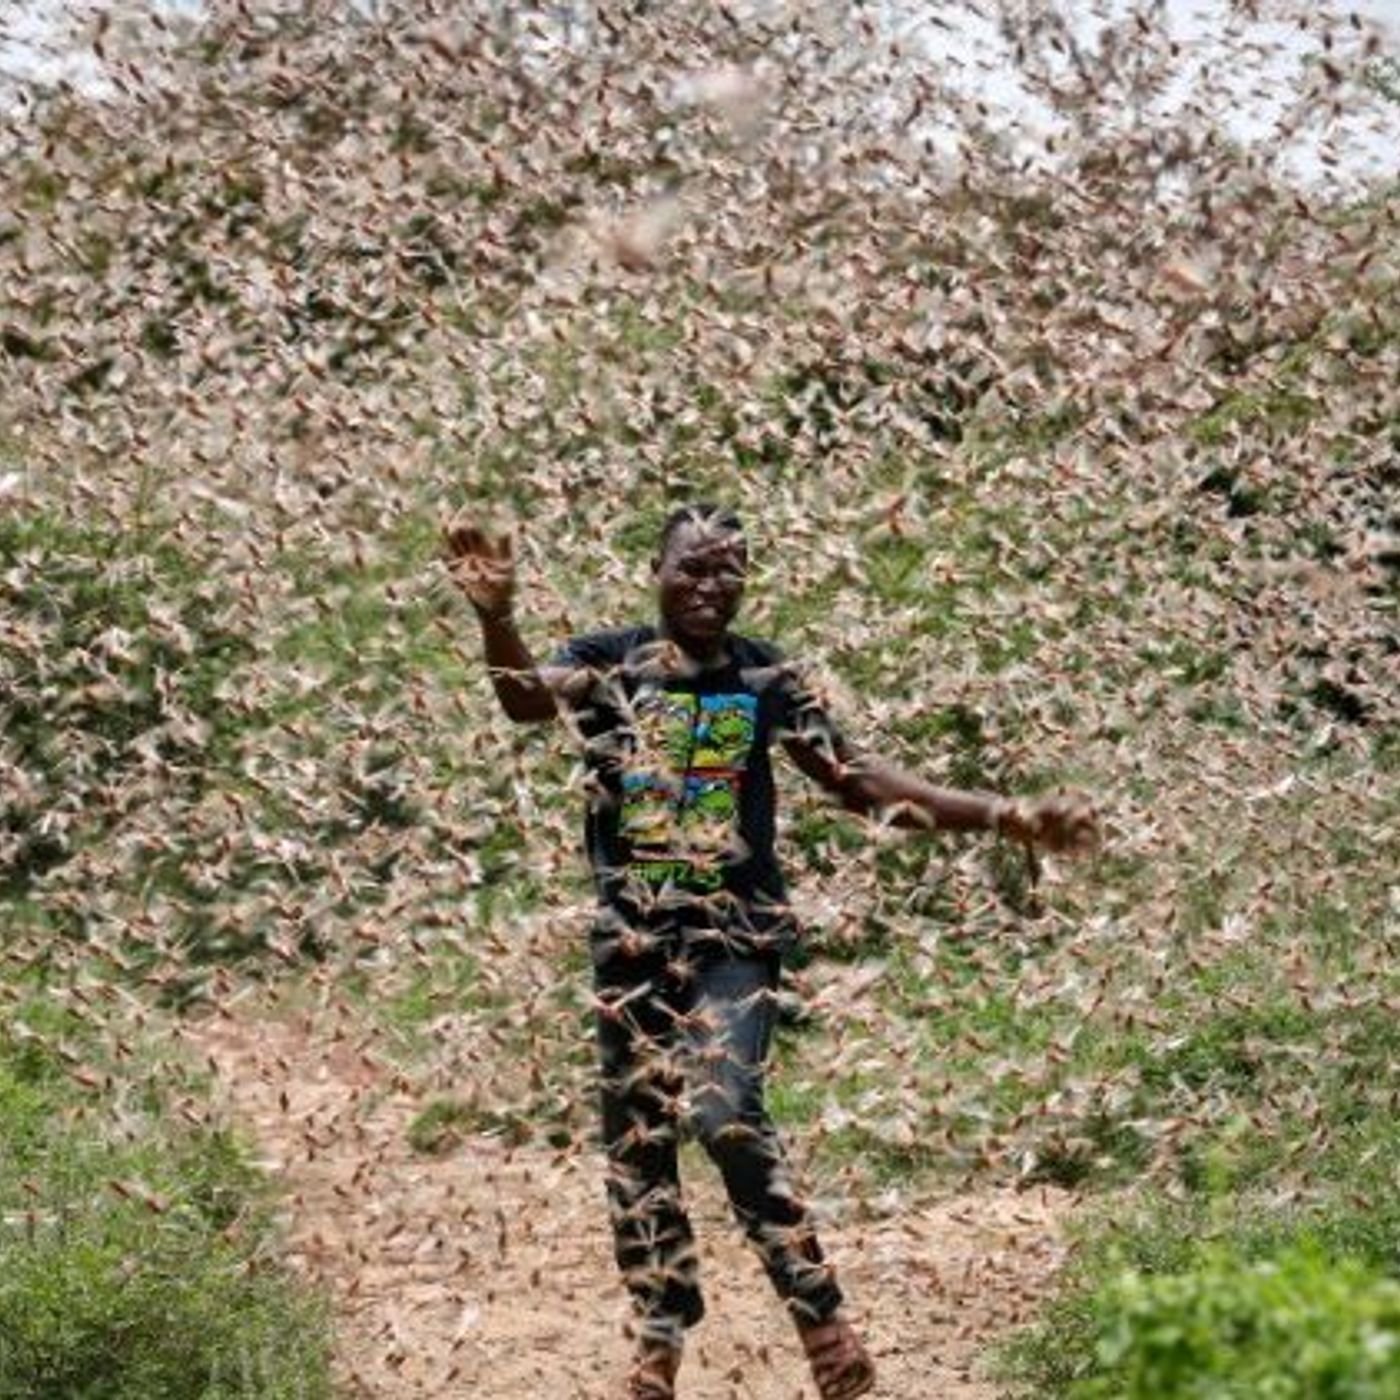 The Locust Outbreak and Biblical Prophecy